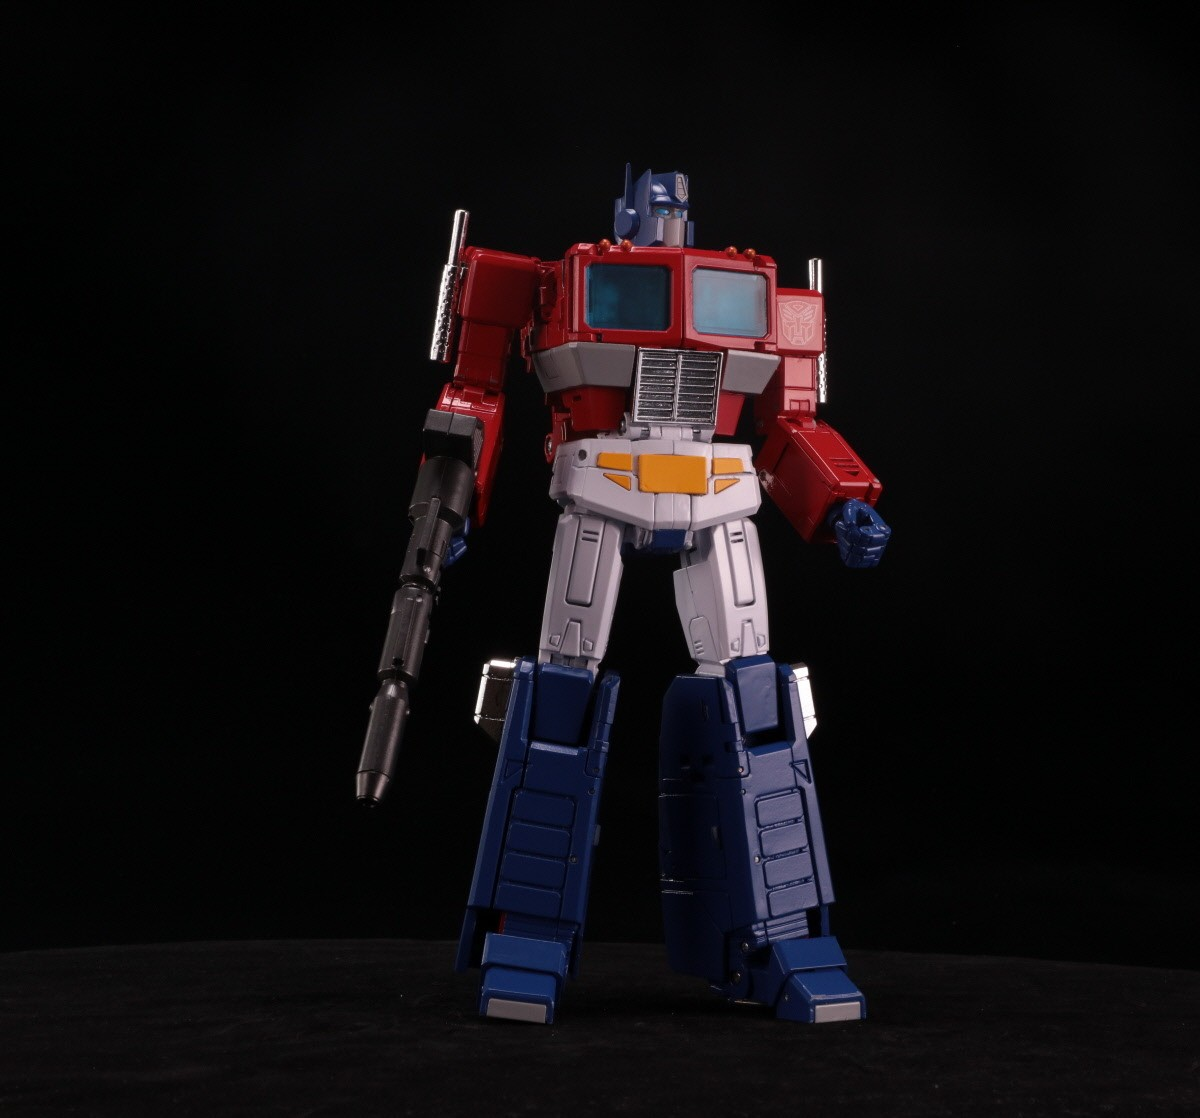 Transformers News: New Turn A Around Photos of Masterpiece MP-44  3.0 and More Pre-Orders